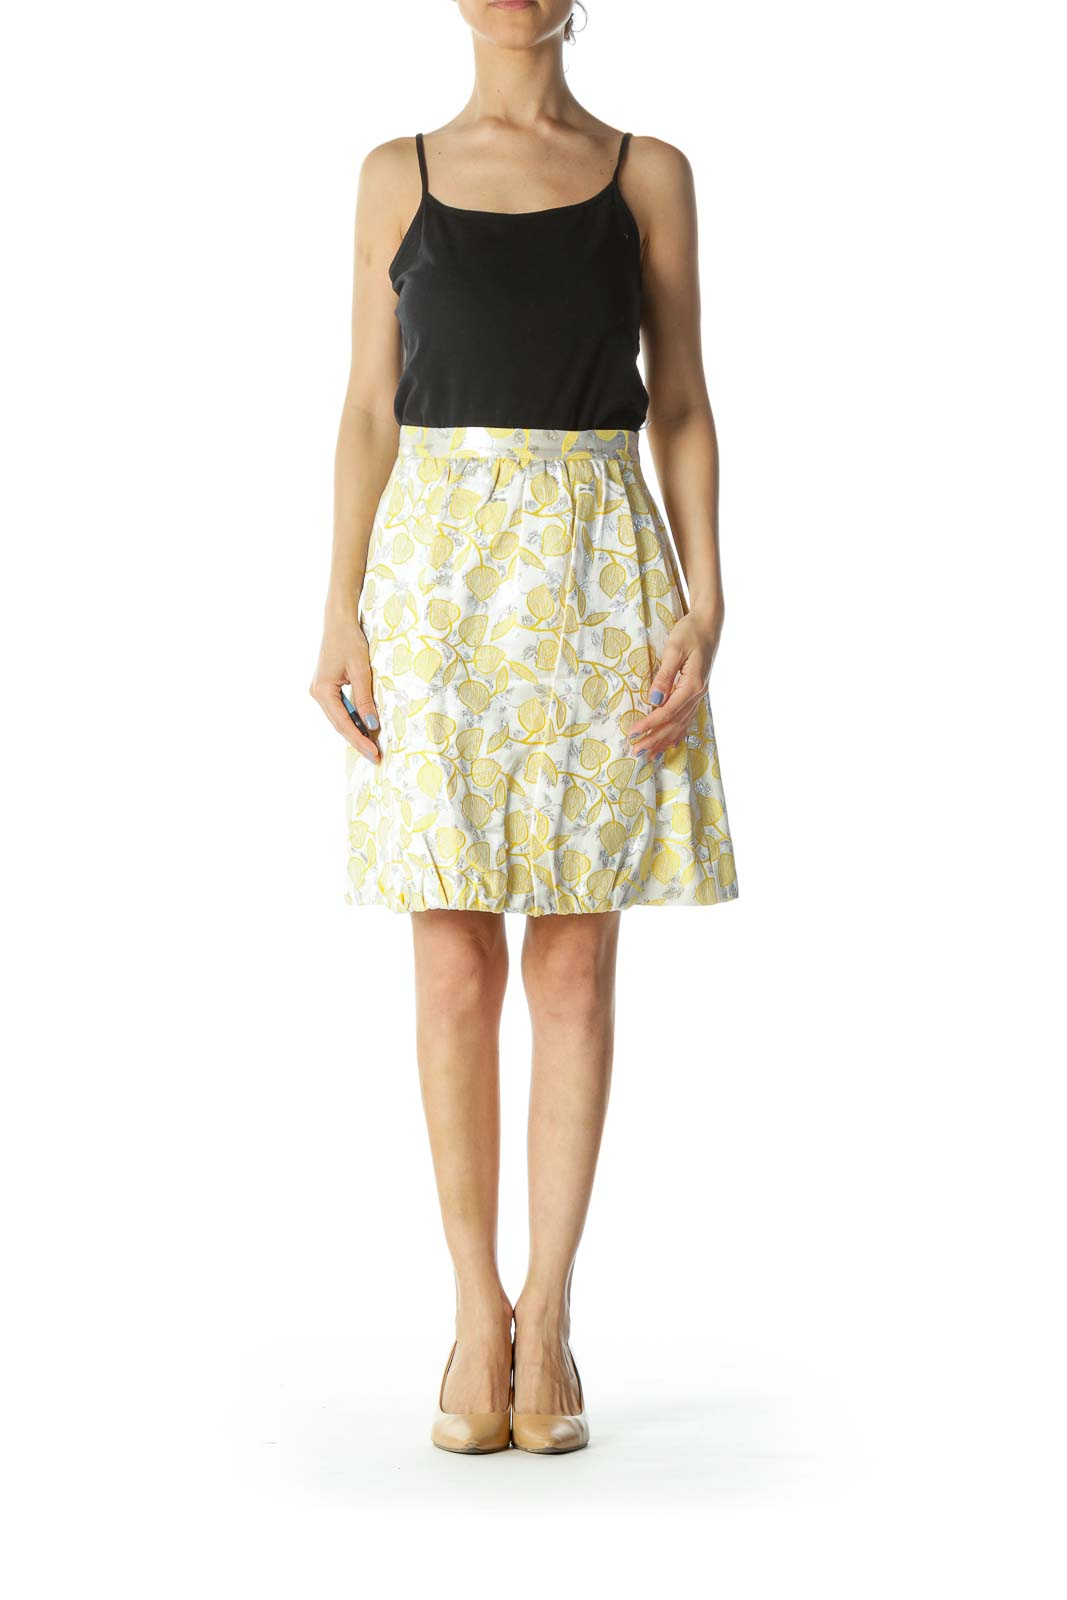 Silver & Yellow Floral-Patterned Designer Pleated Skirt